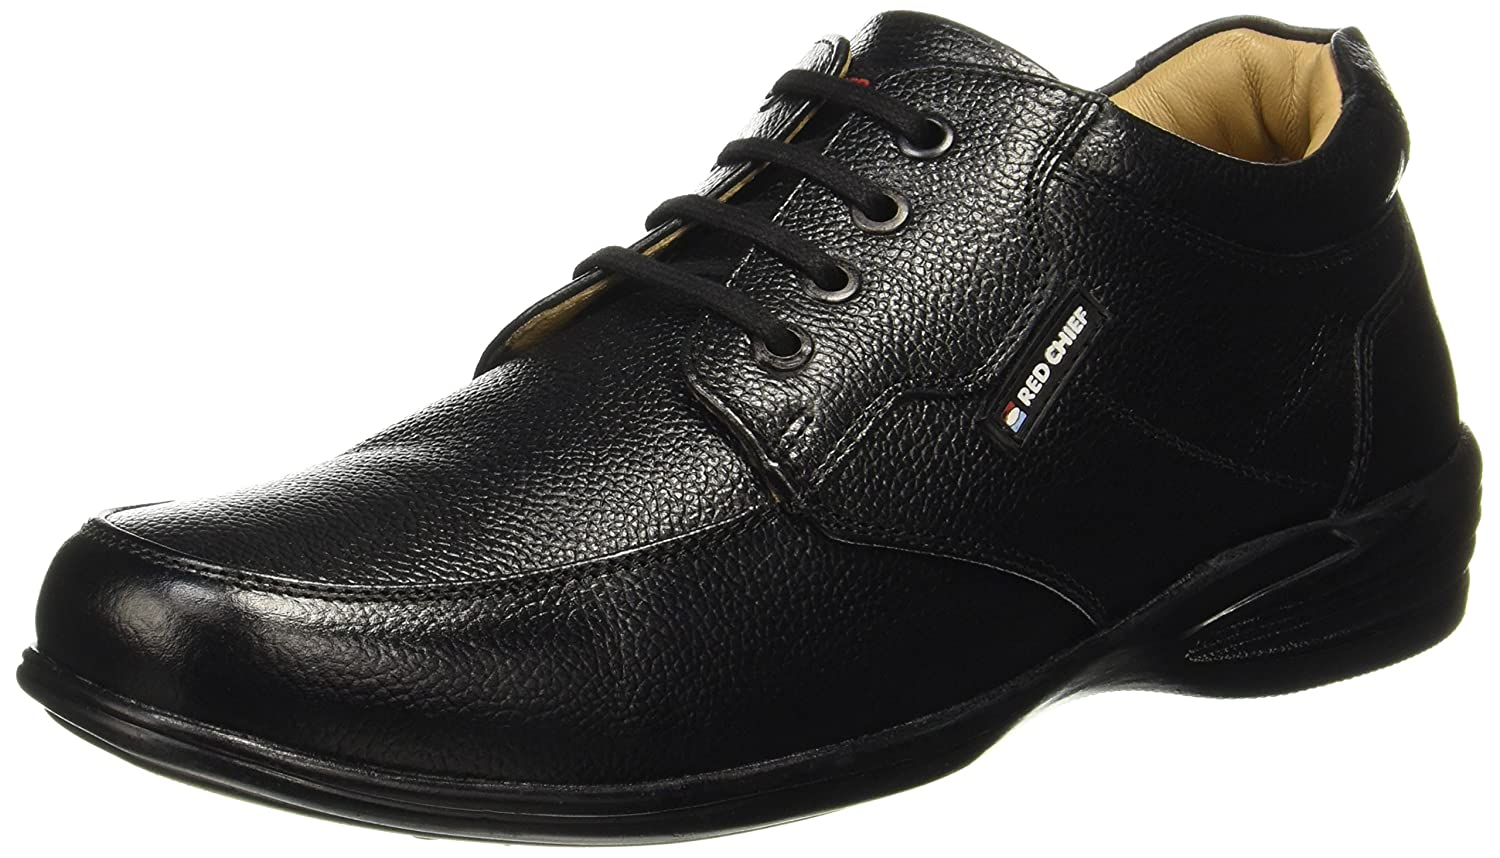 Red Chief Men's Formal Shoes at Amazon